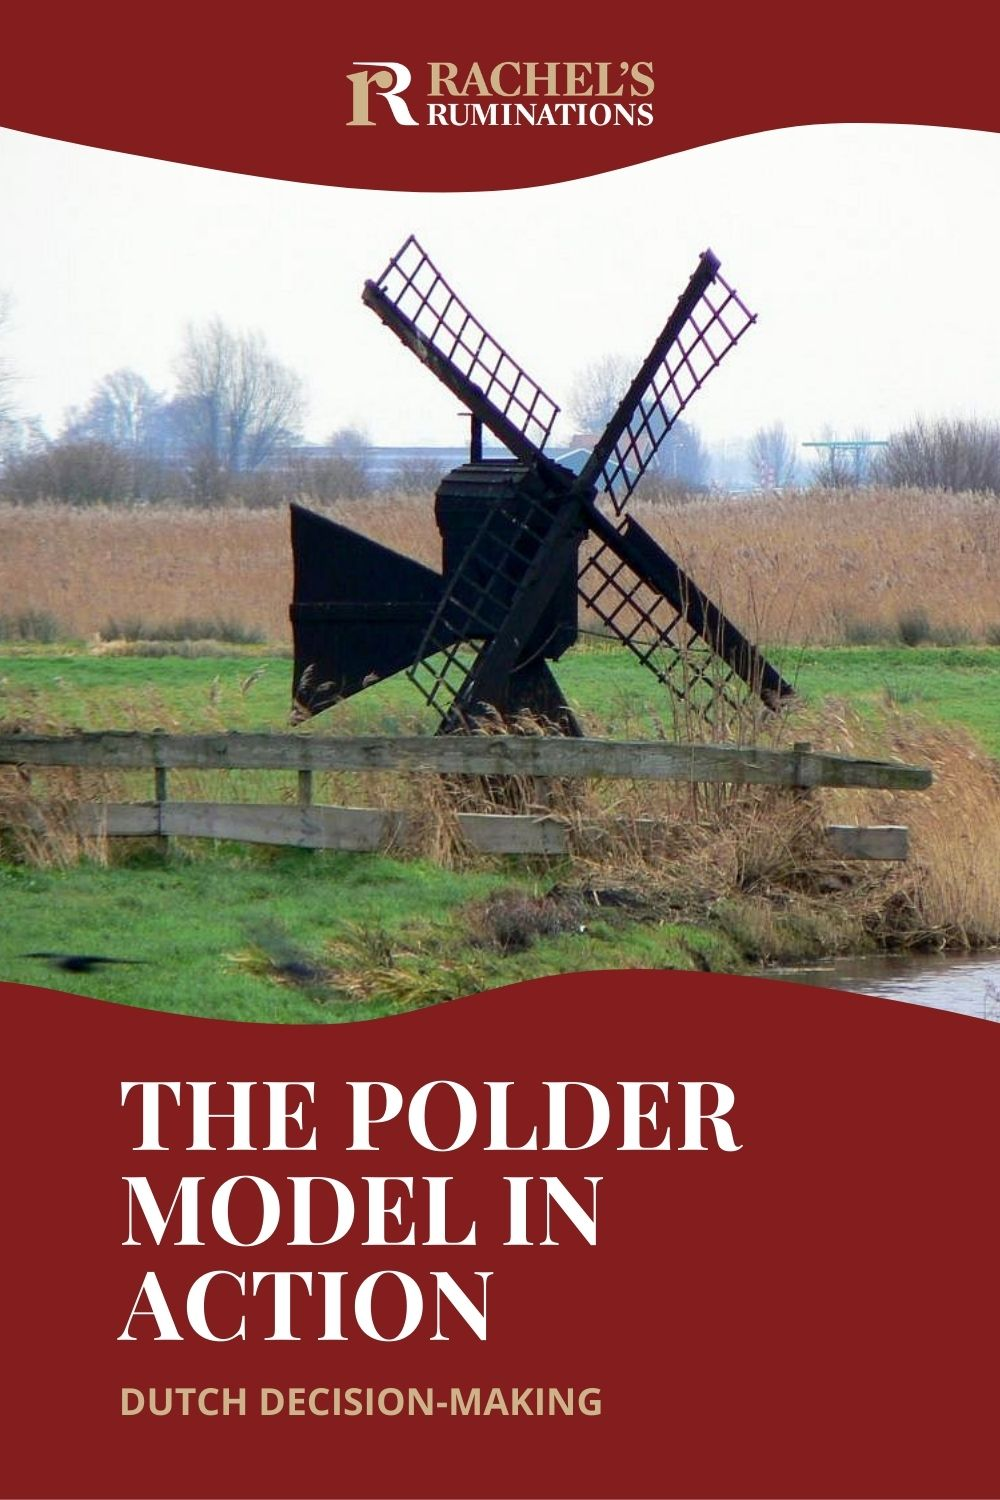 Ever heard of the Dutch polder model? It's a political term referring to consensus decision-making in the Netherlands, but it's used in organizations too. via @rachelsruminations